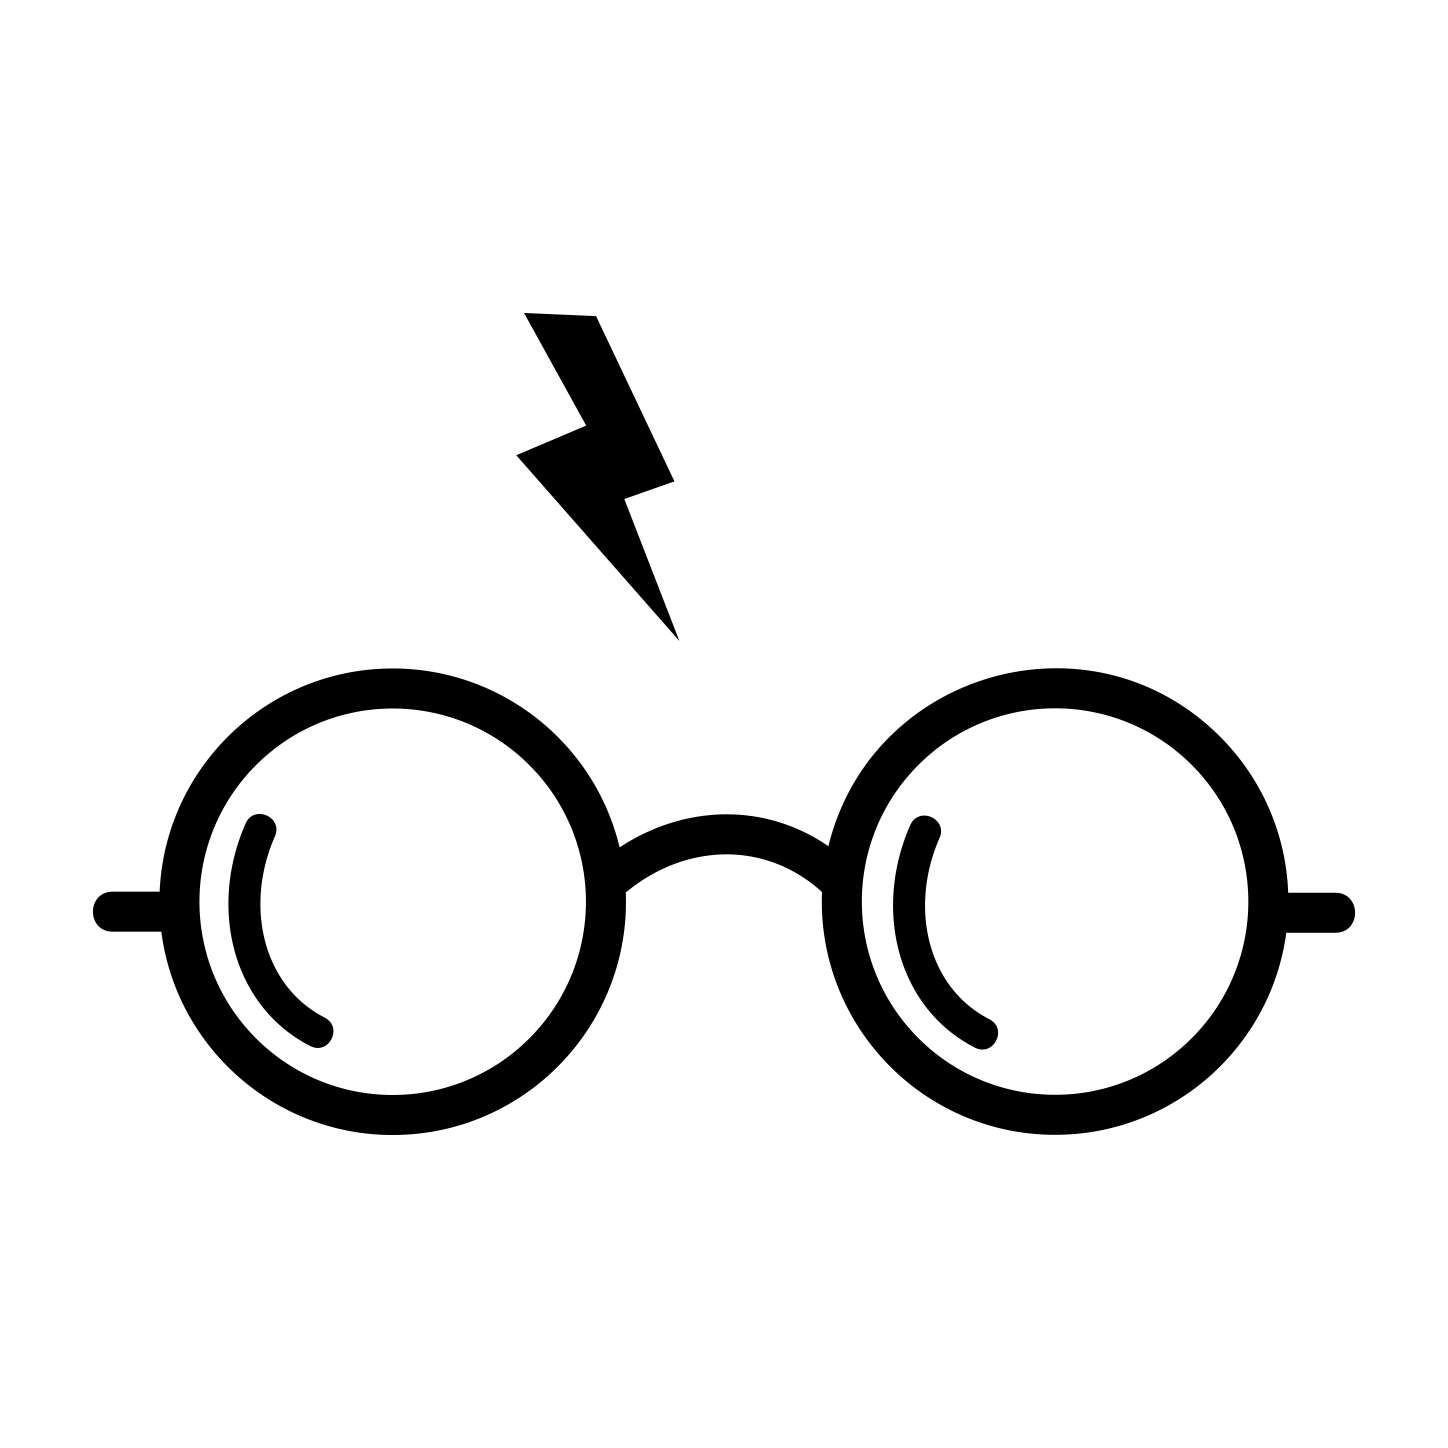 harry potter glasses graphics svg dxf eps png cdr ai pdf vector art clipart instant download digital harry potter glasses harry potter decal harry potter logo harry potter glasses graphics svg dxf